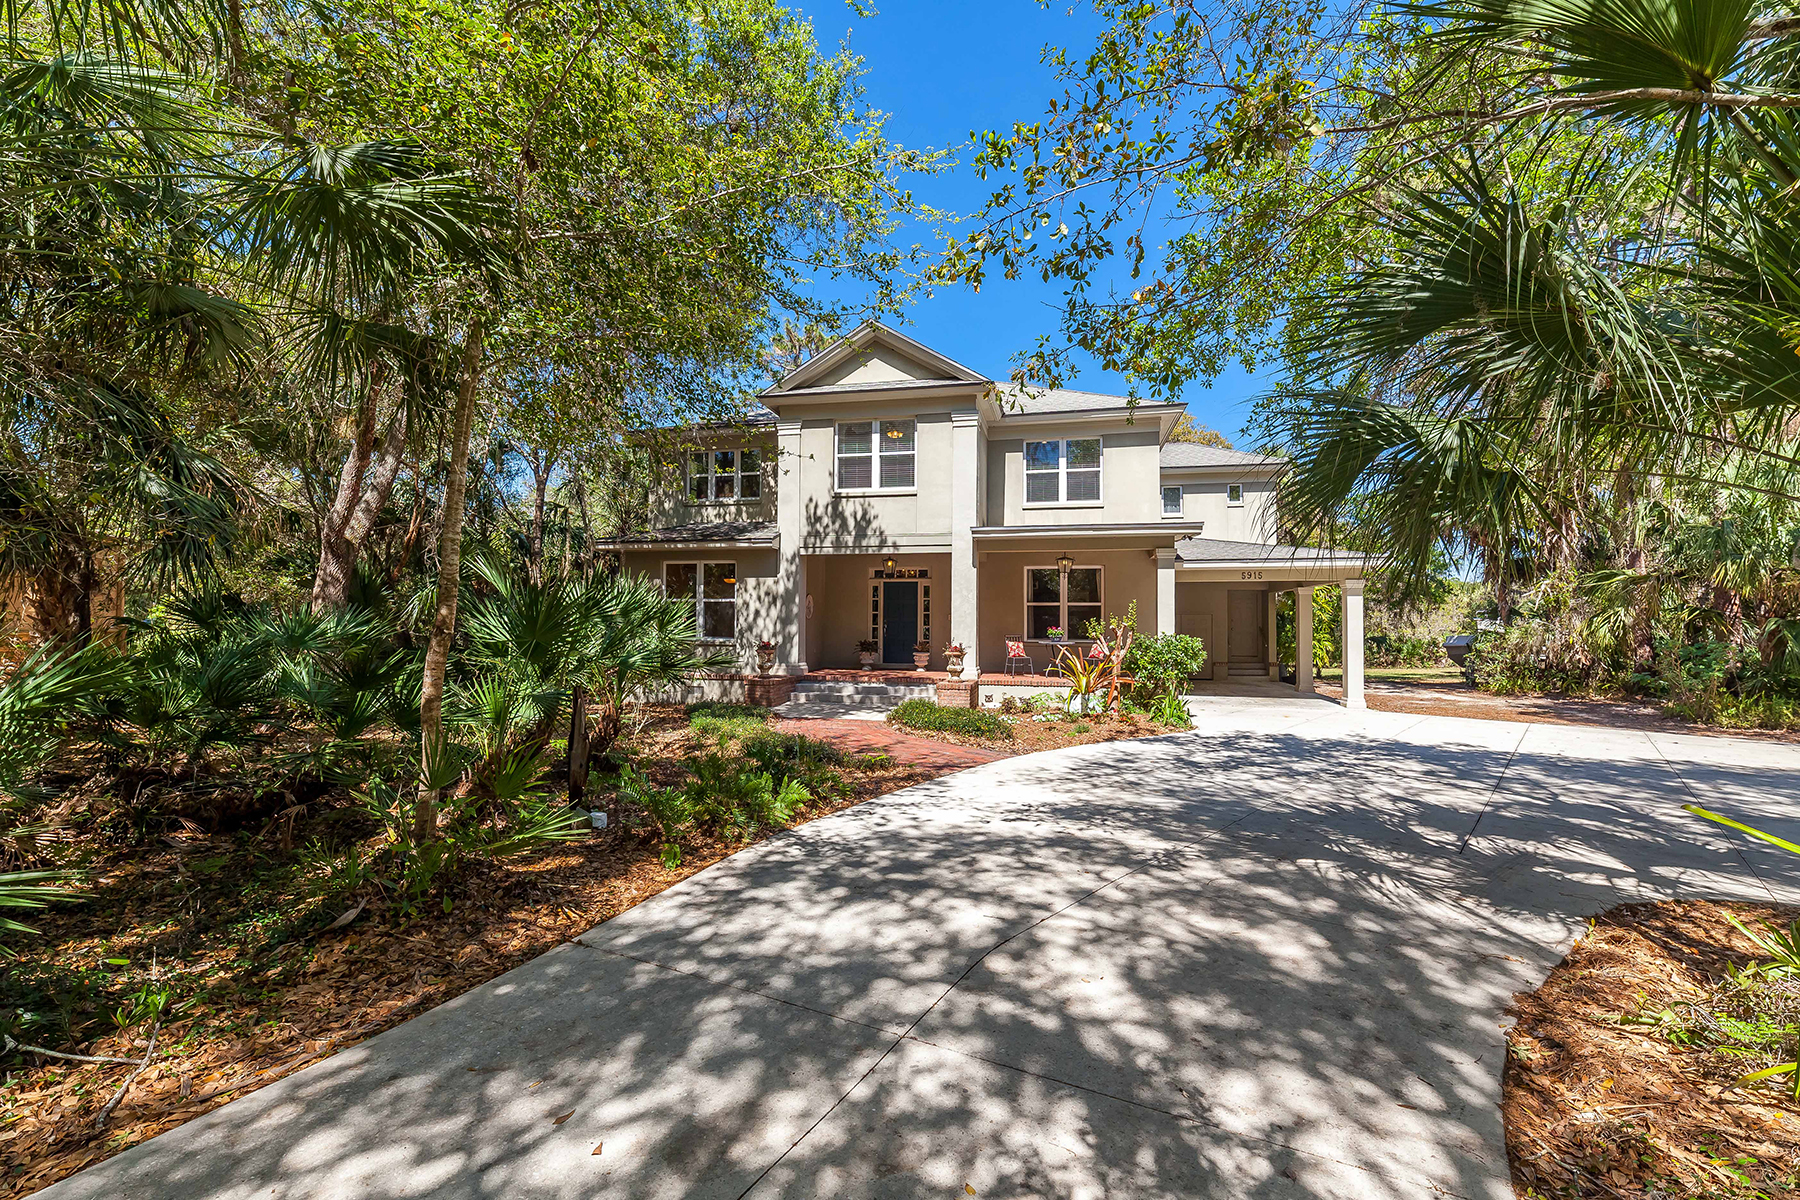 Single Family Home for Sale at BRADENTON 5915 River Forest Cir Bradenton, Florida, 34203 United States